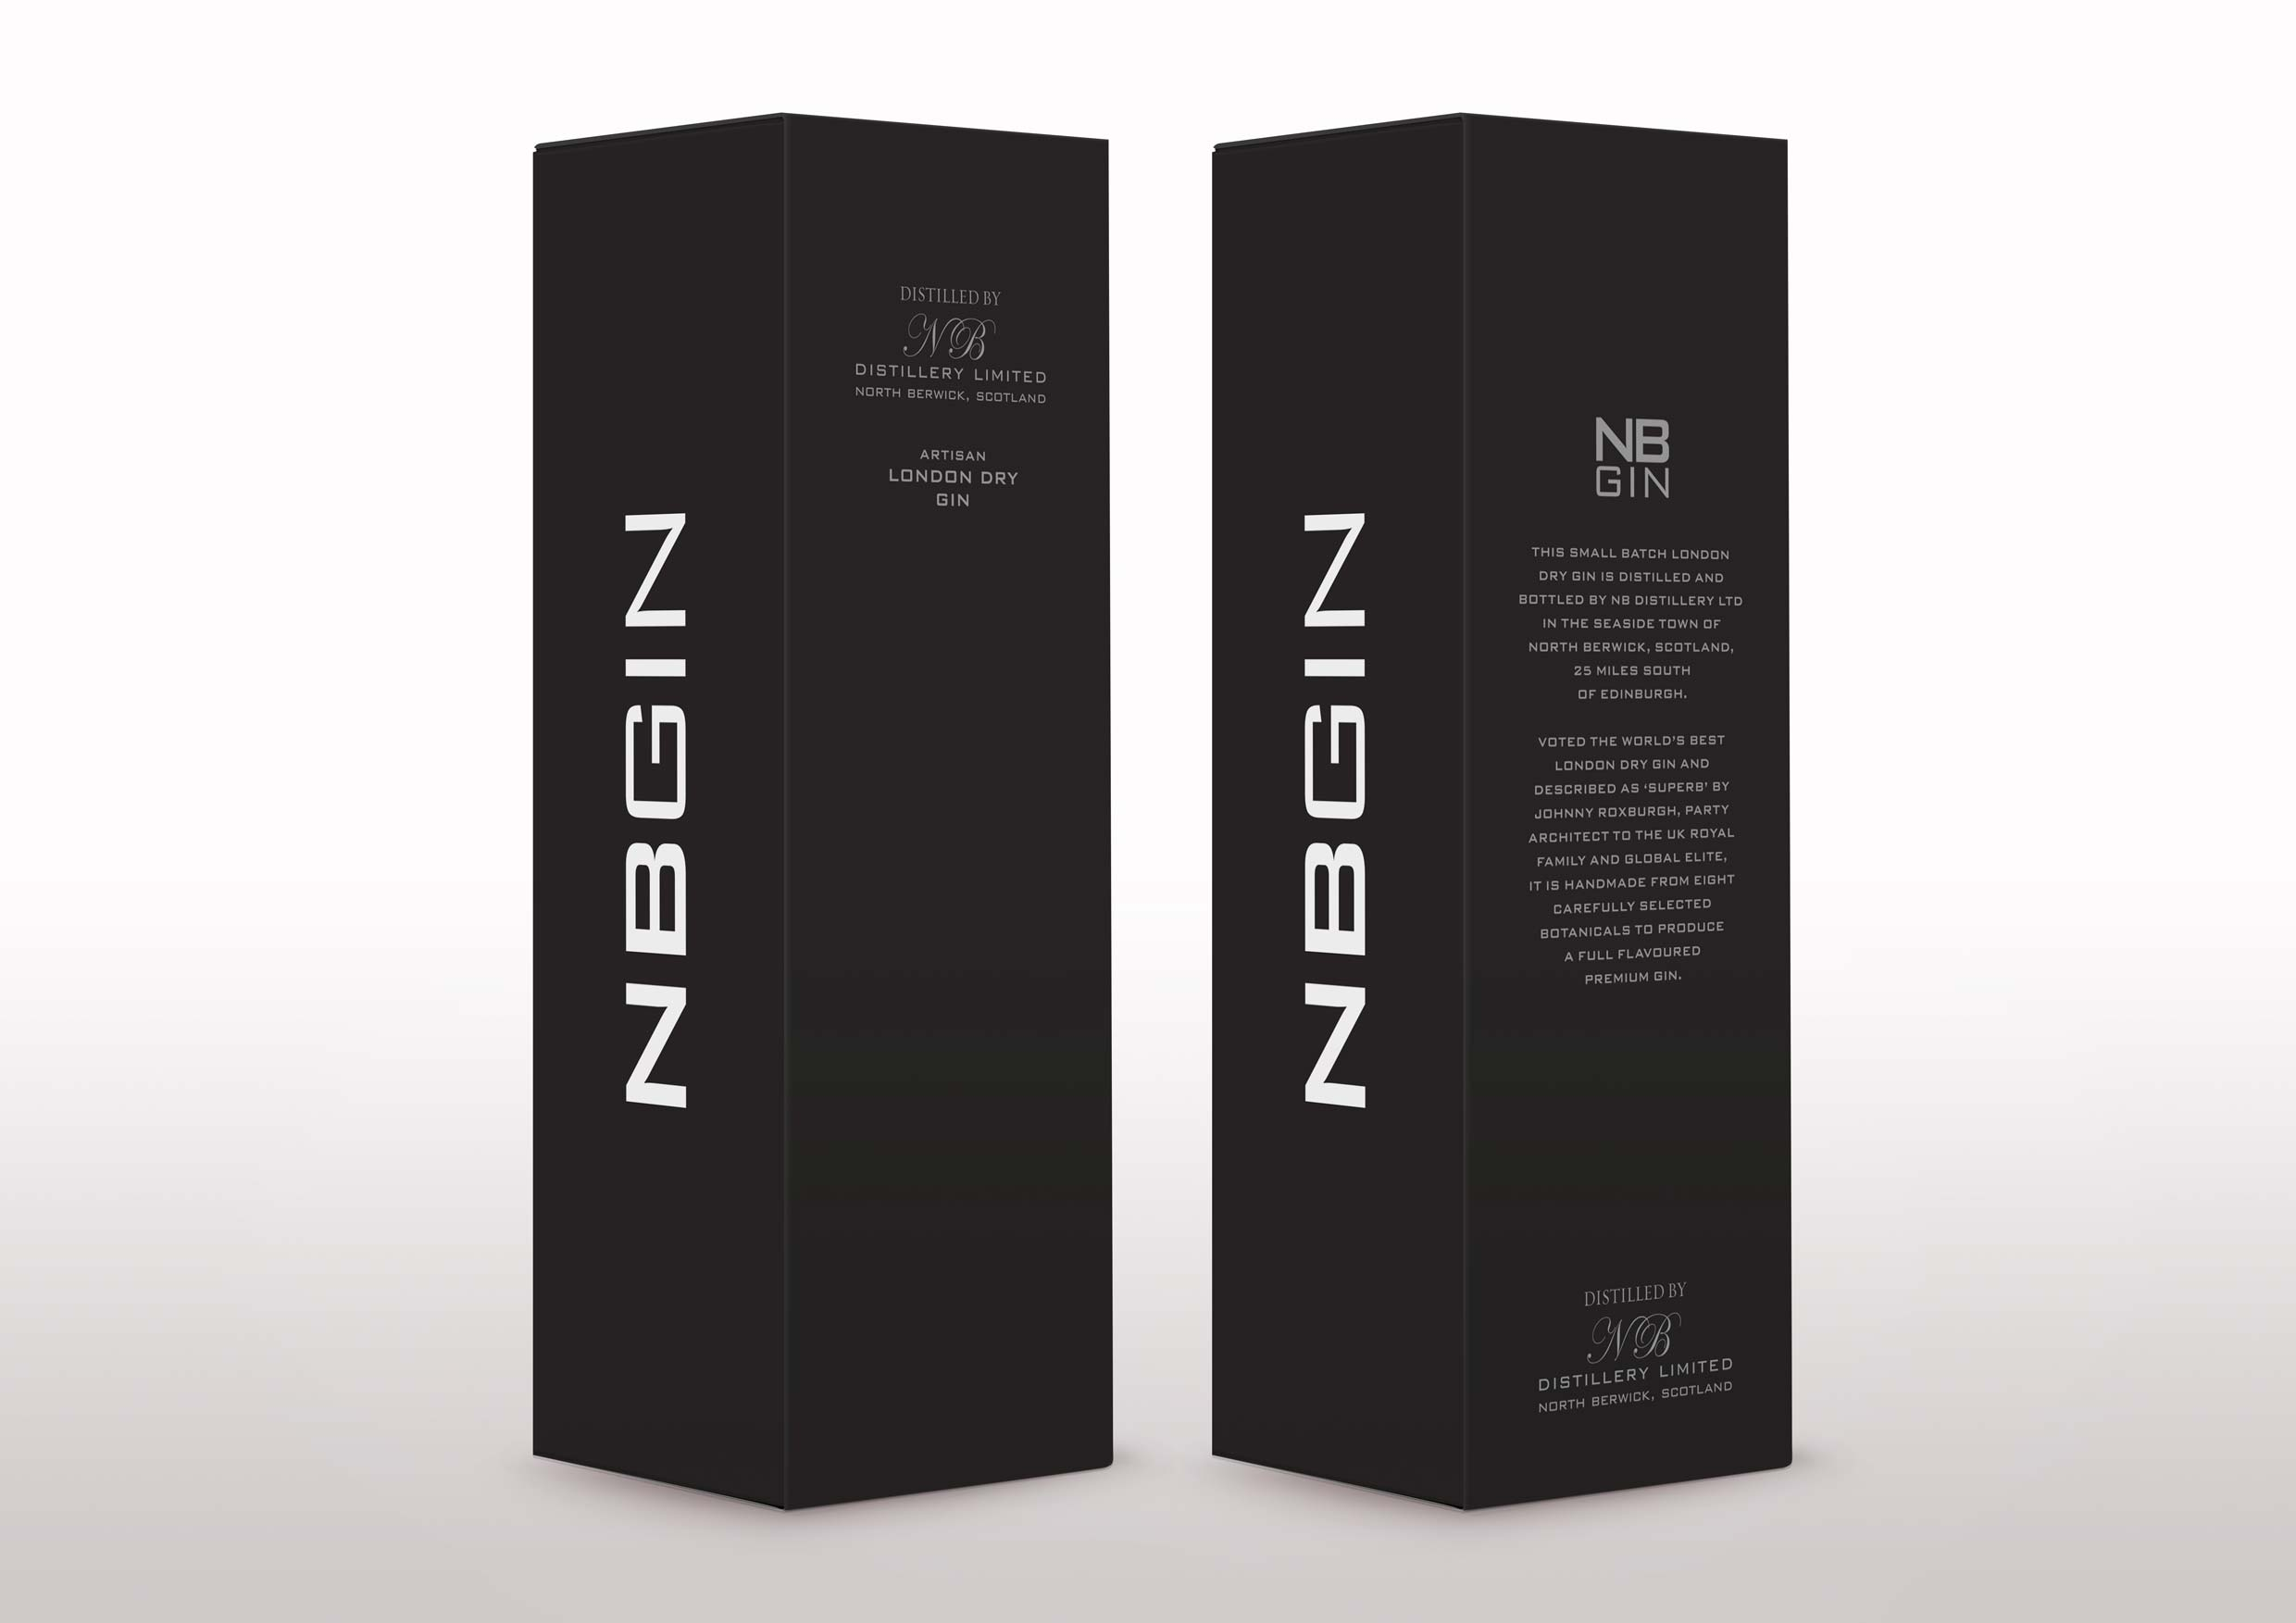 NBGin_boxes_richardbudddesign.jpg